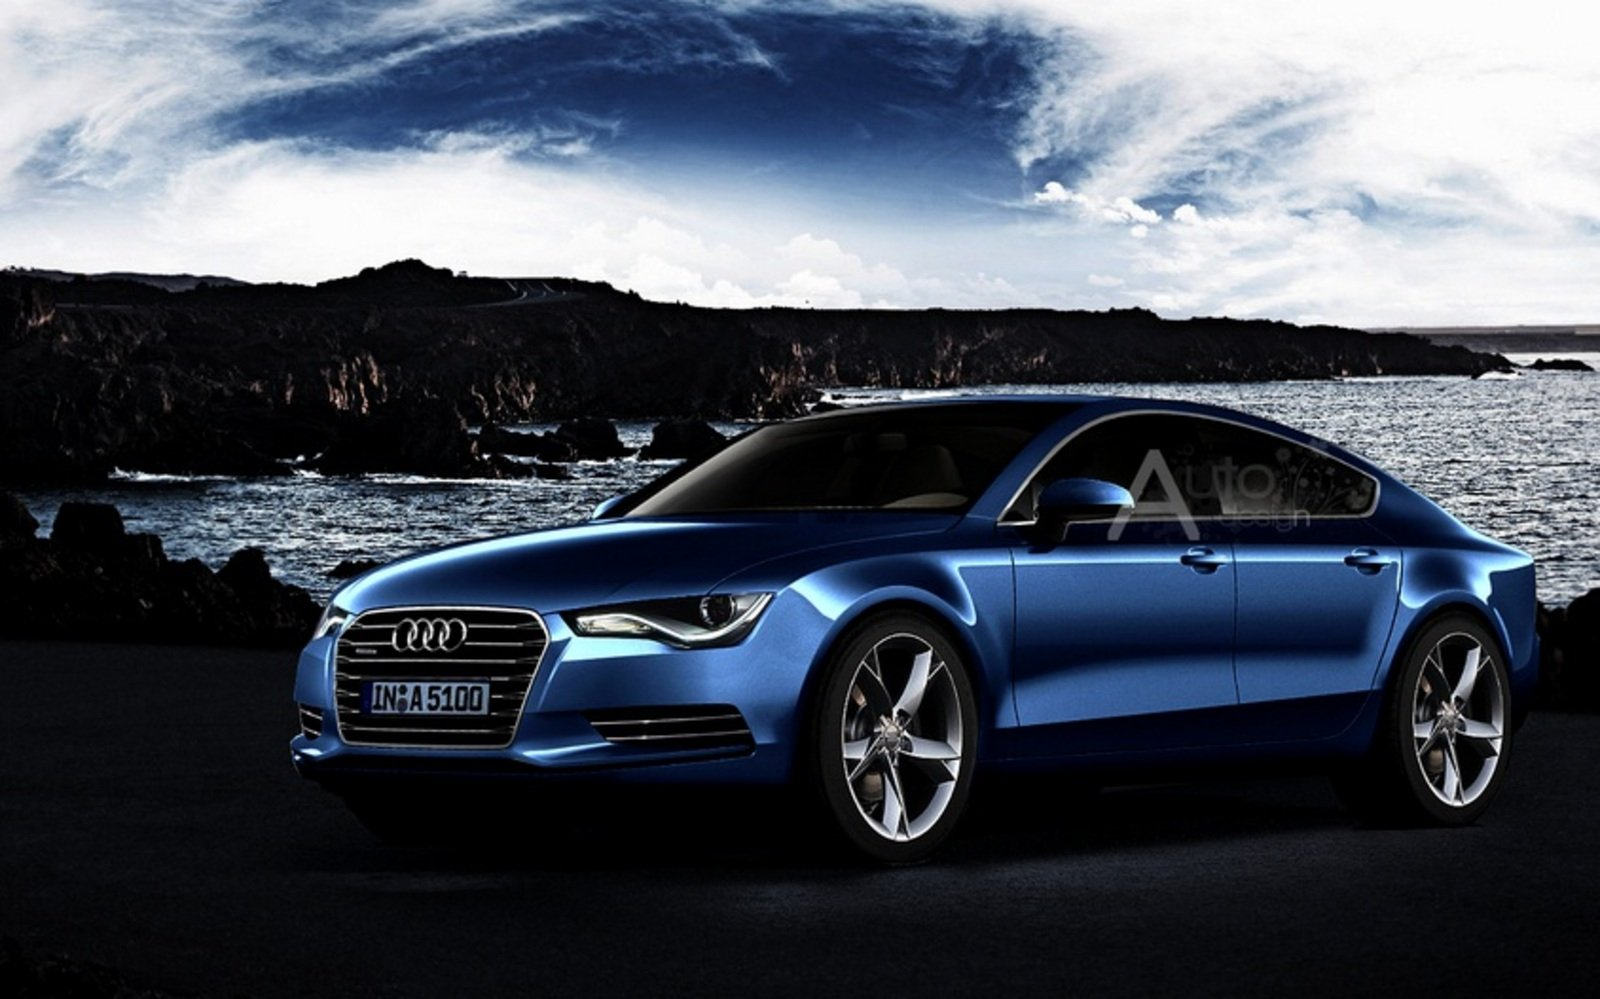 2011 audi a7 sportback preview review top speed. Black Bedroom Furniture Sets. Home Design Ideas